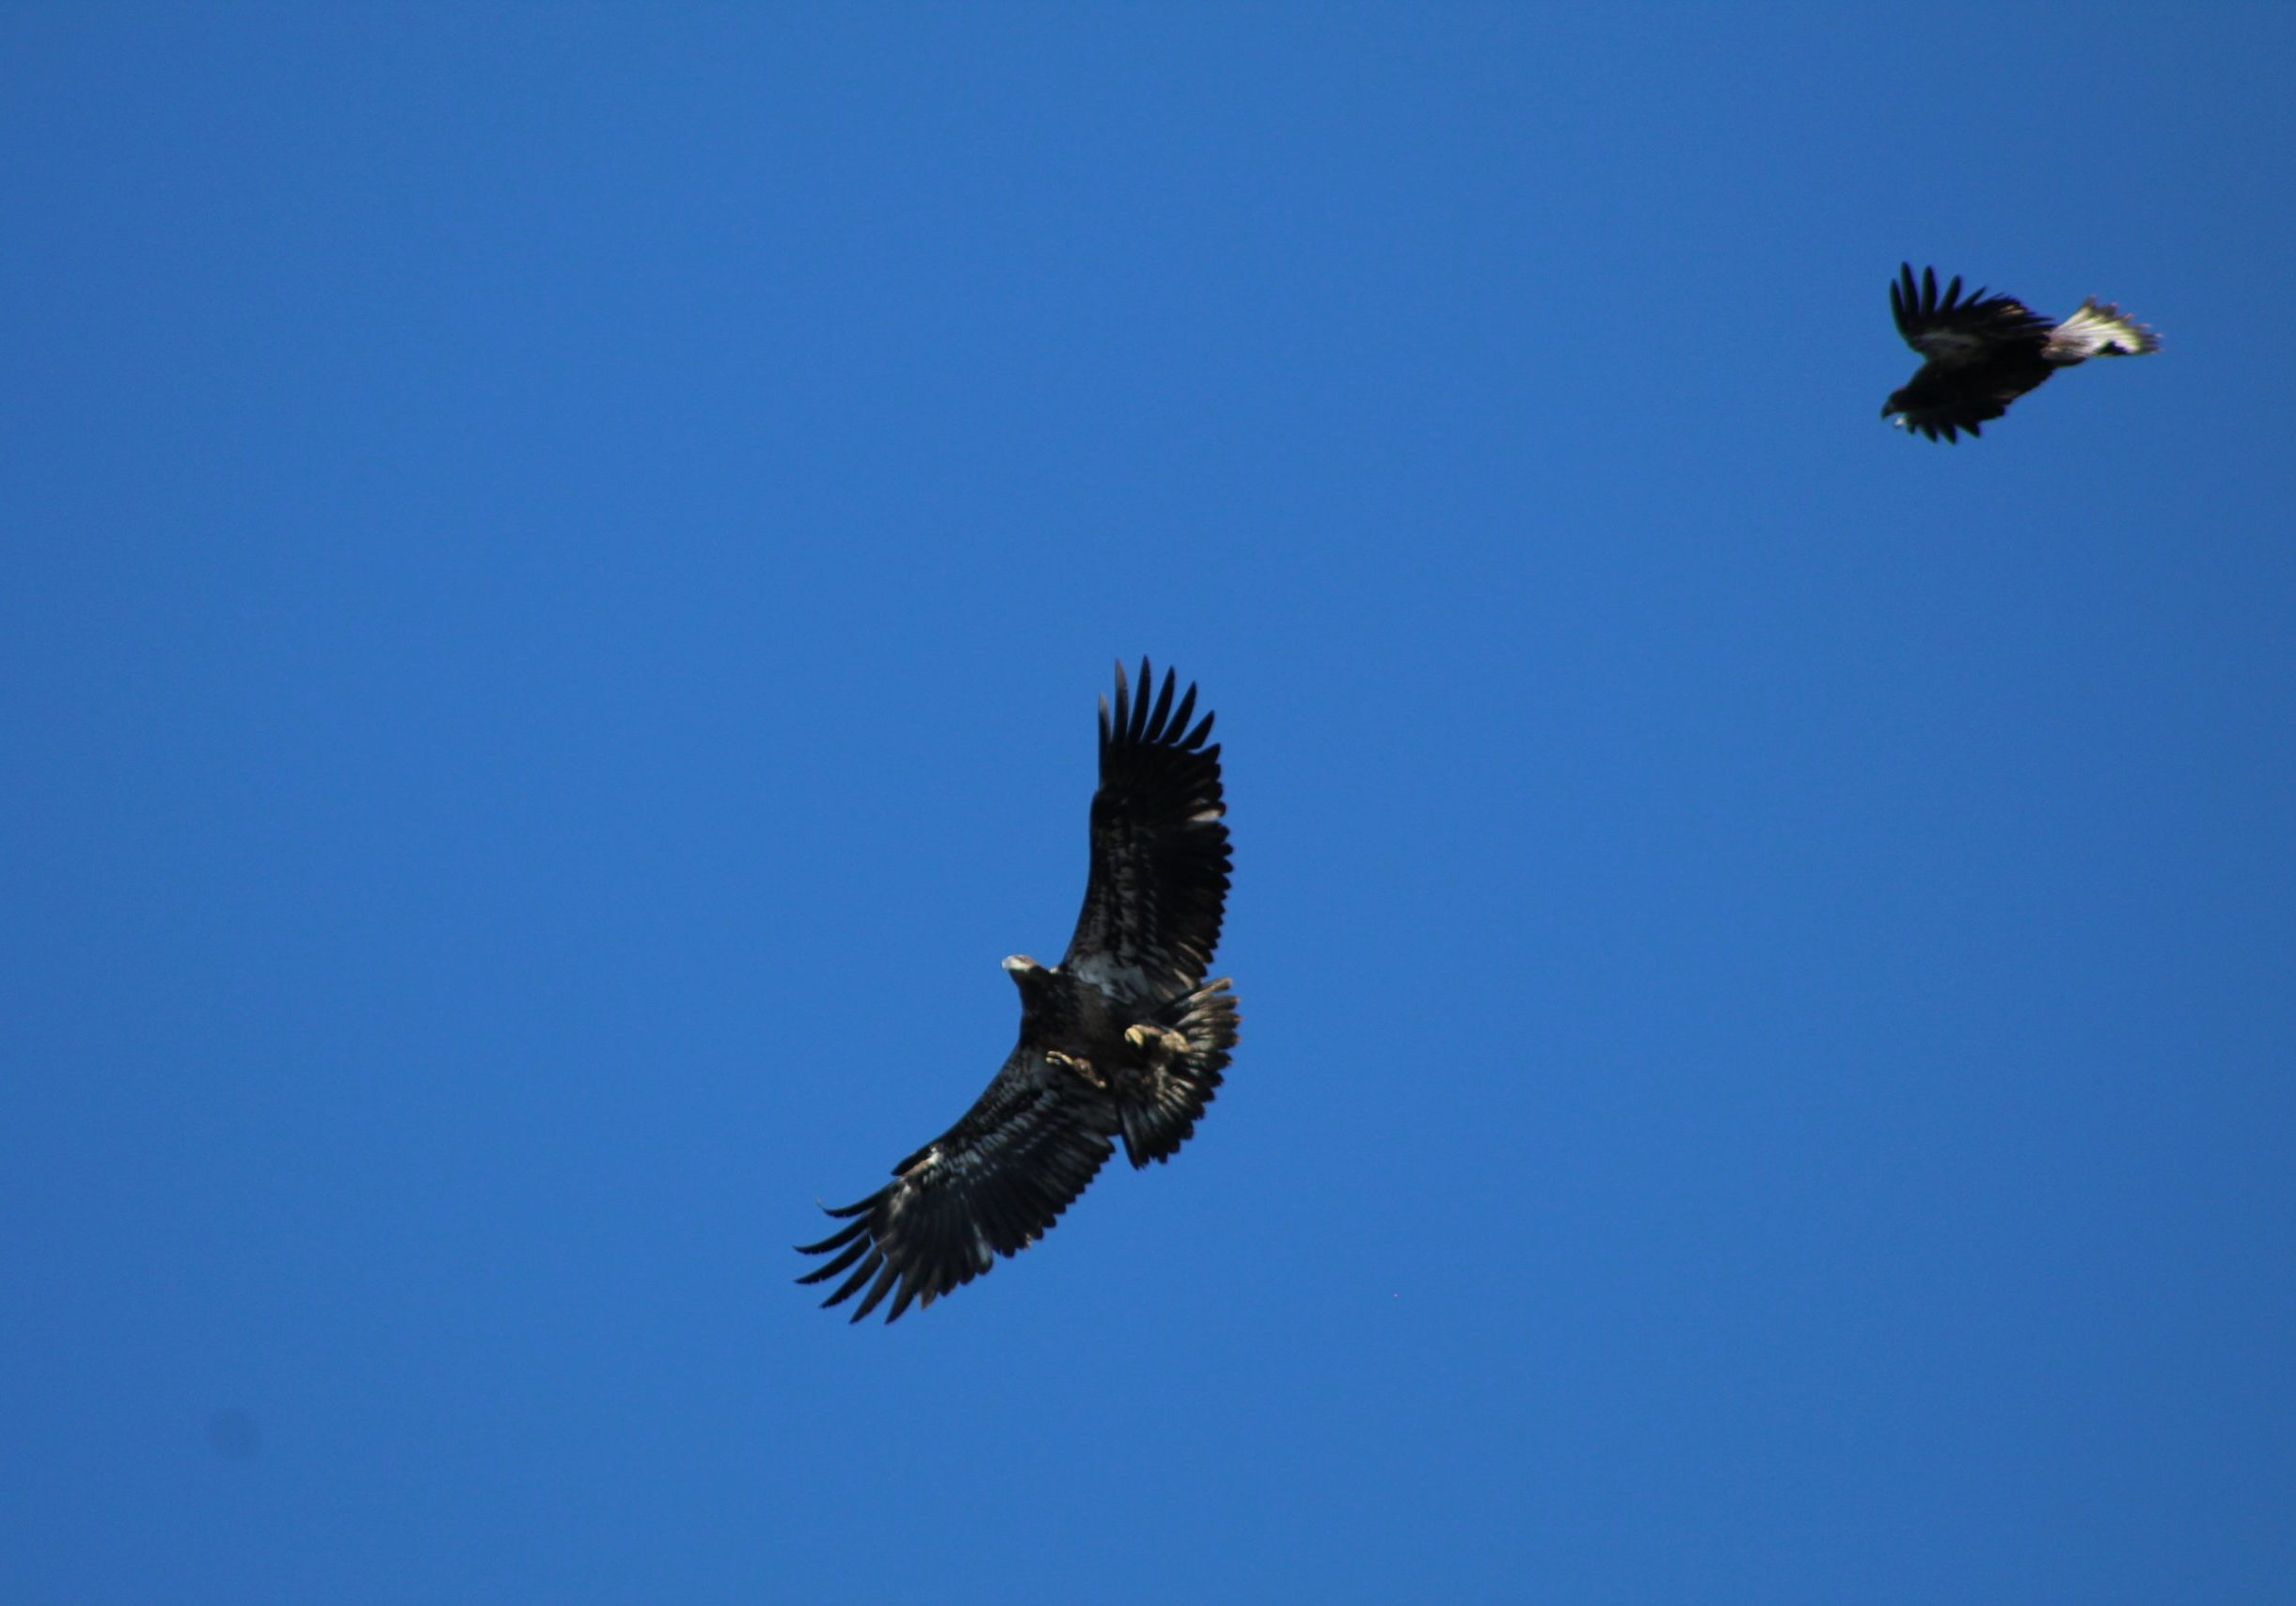 Juvenile Bald Eagles over the watch